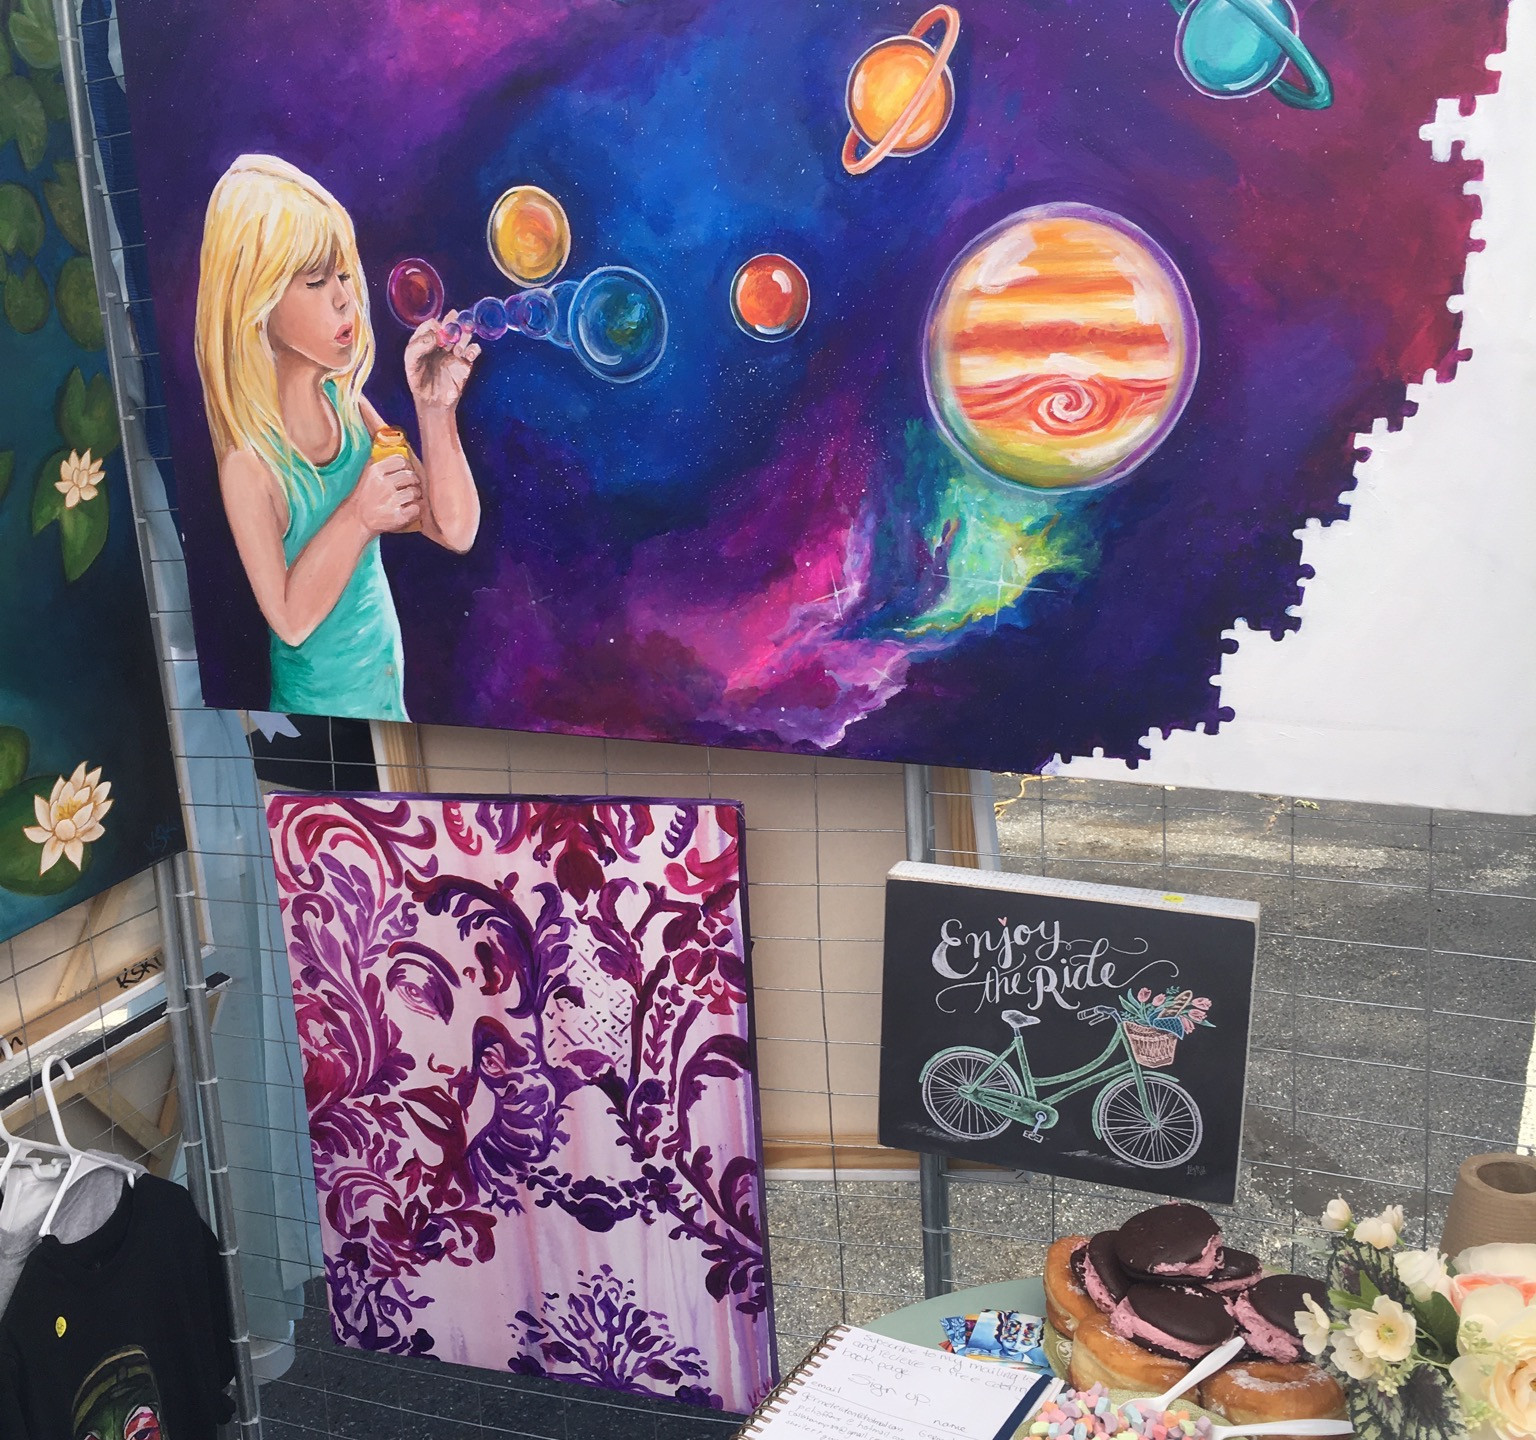 Create Your Universe by Krissy Whisk